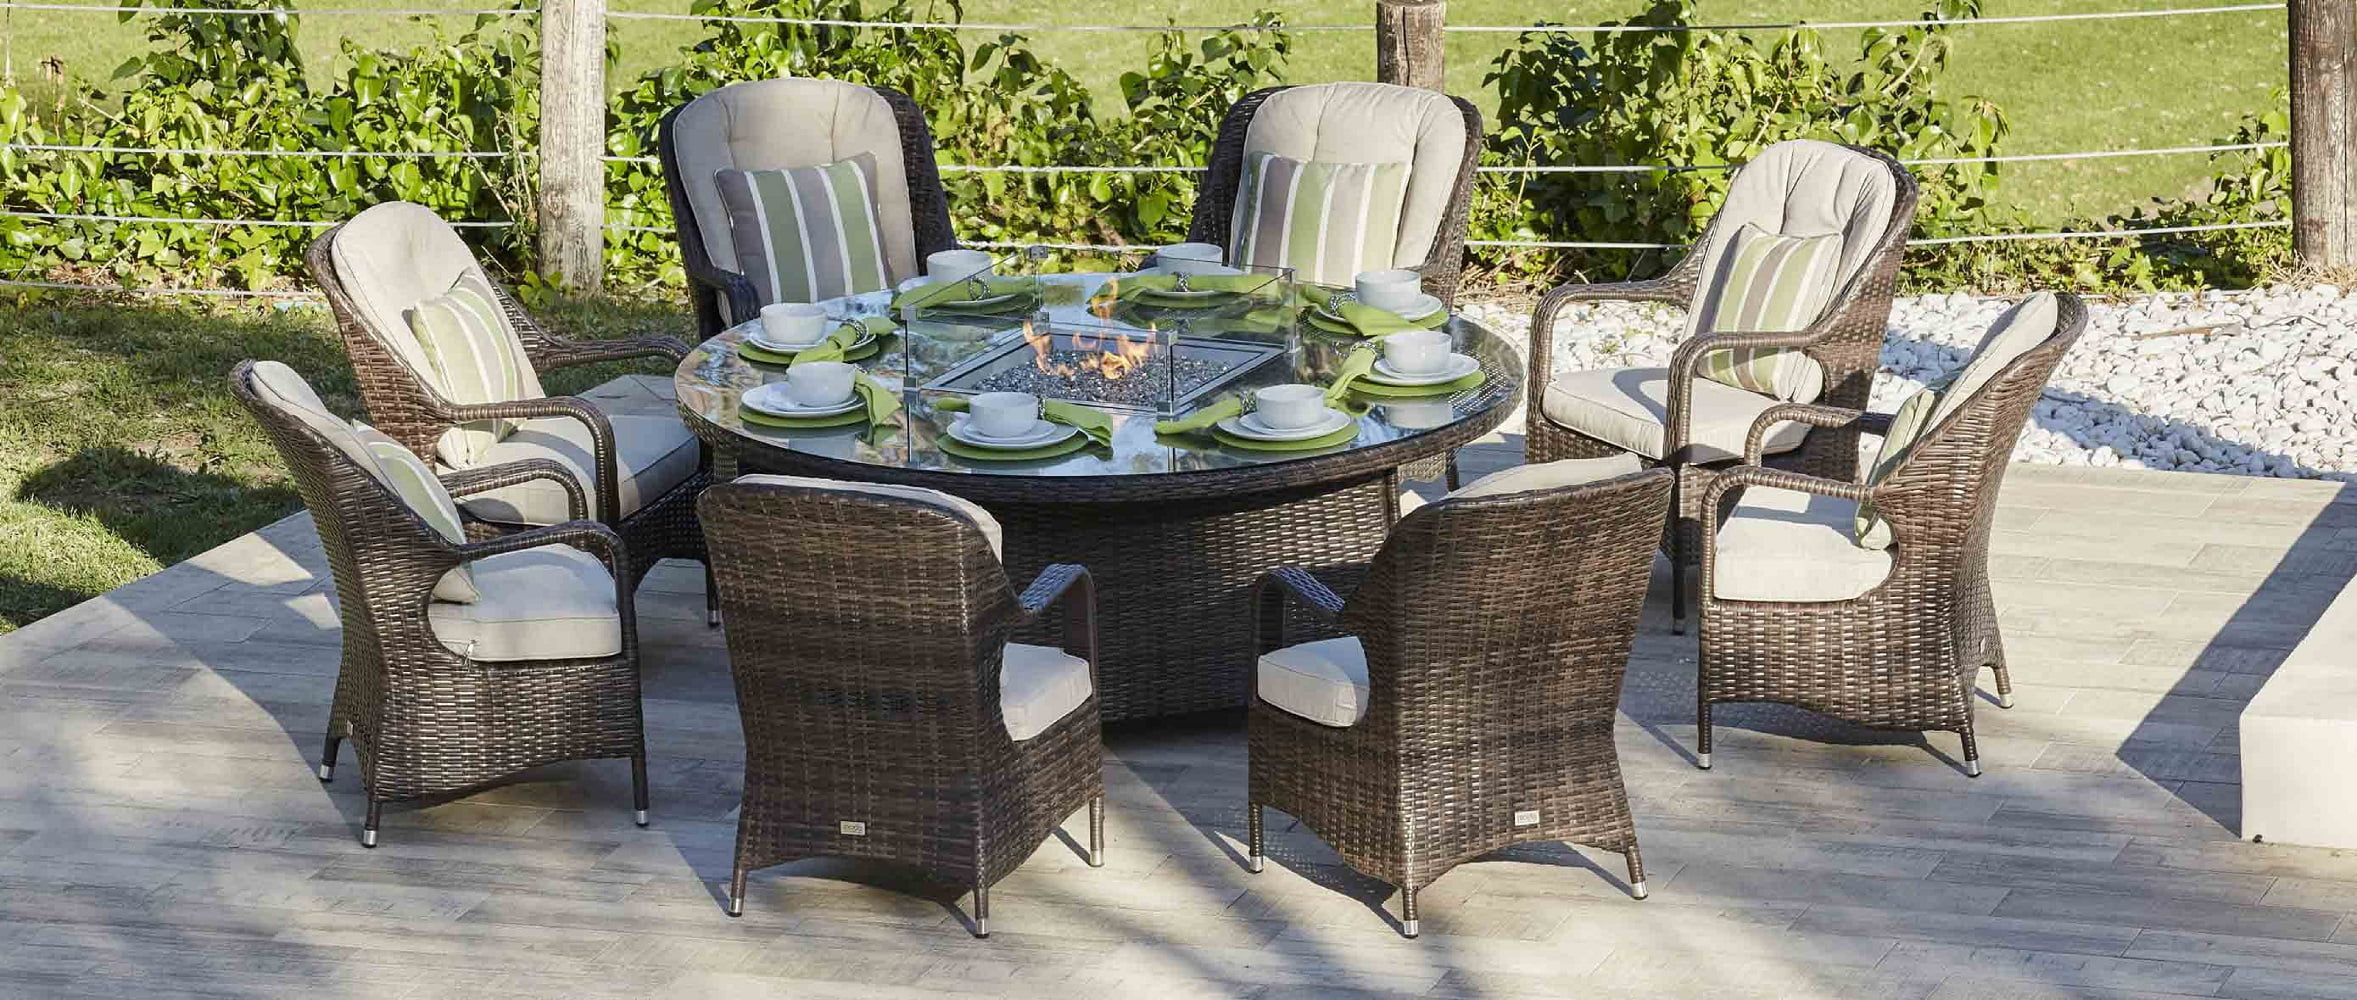 round brown 8 seat gas fire pit outdoor dining table rattan wicker patio multi purpose use bbq grill plate with stainless steel fire pit cover glass